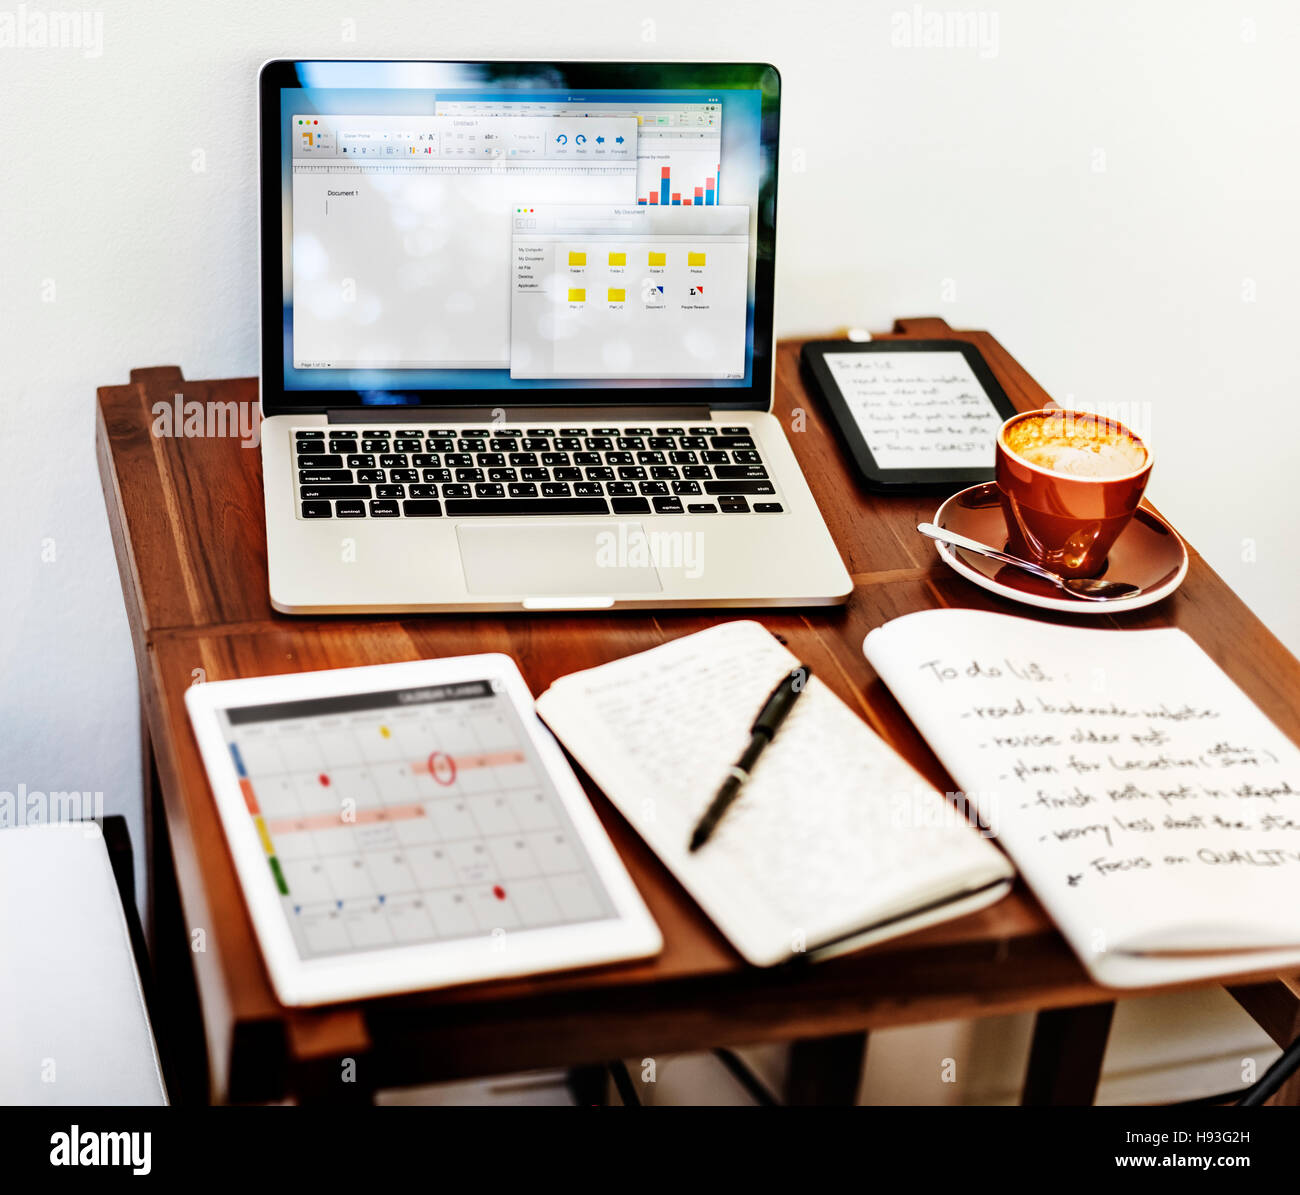 Home Office Workspace Place of Work Concept - Stock Image